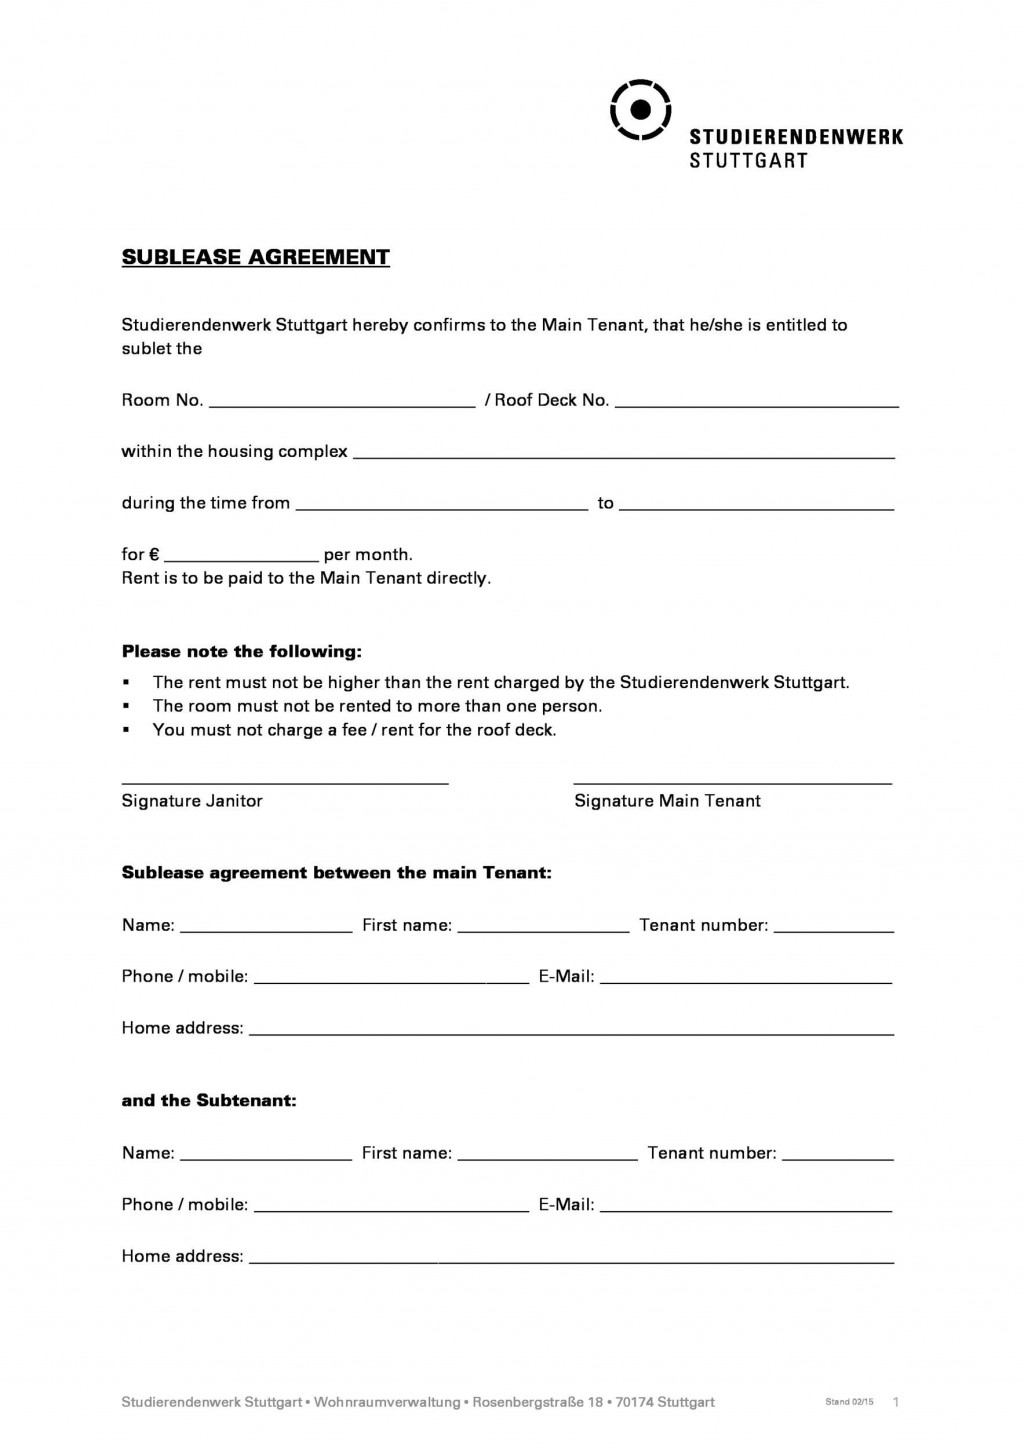 004 Astounding Free Sublease Agreement Template Pdf Inspiration  Room Rental Car Form Residential LeaseLarge